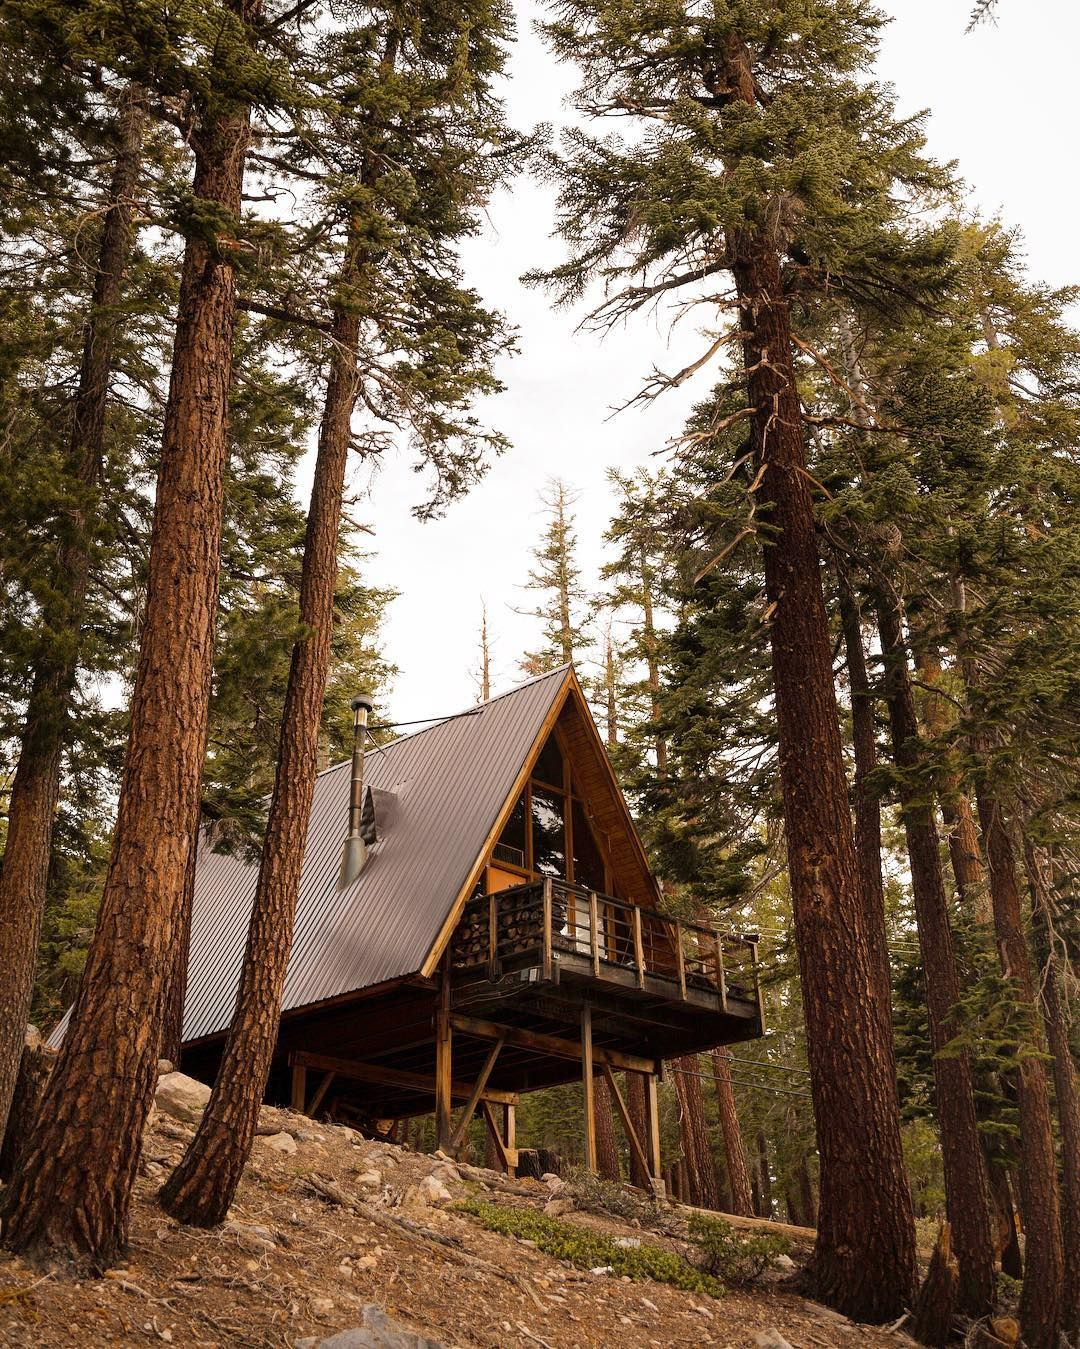 Two Hillside Cabins In The Trees By Feldman Architecture: A Frame Cabin, Tree House Decor, Cabin